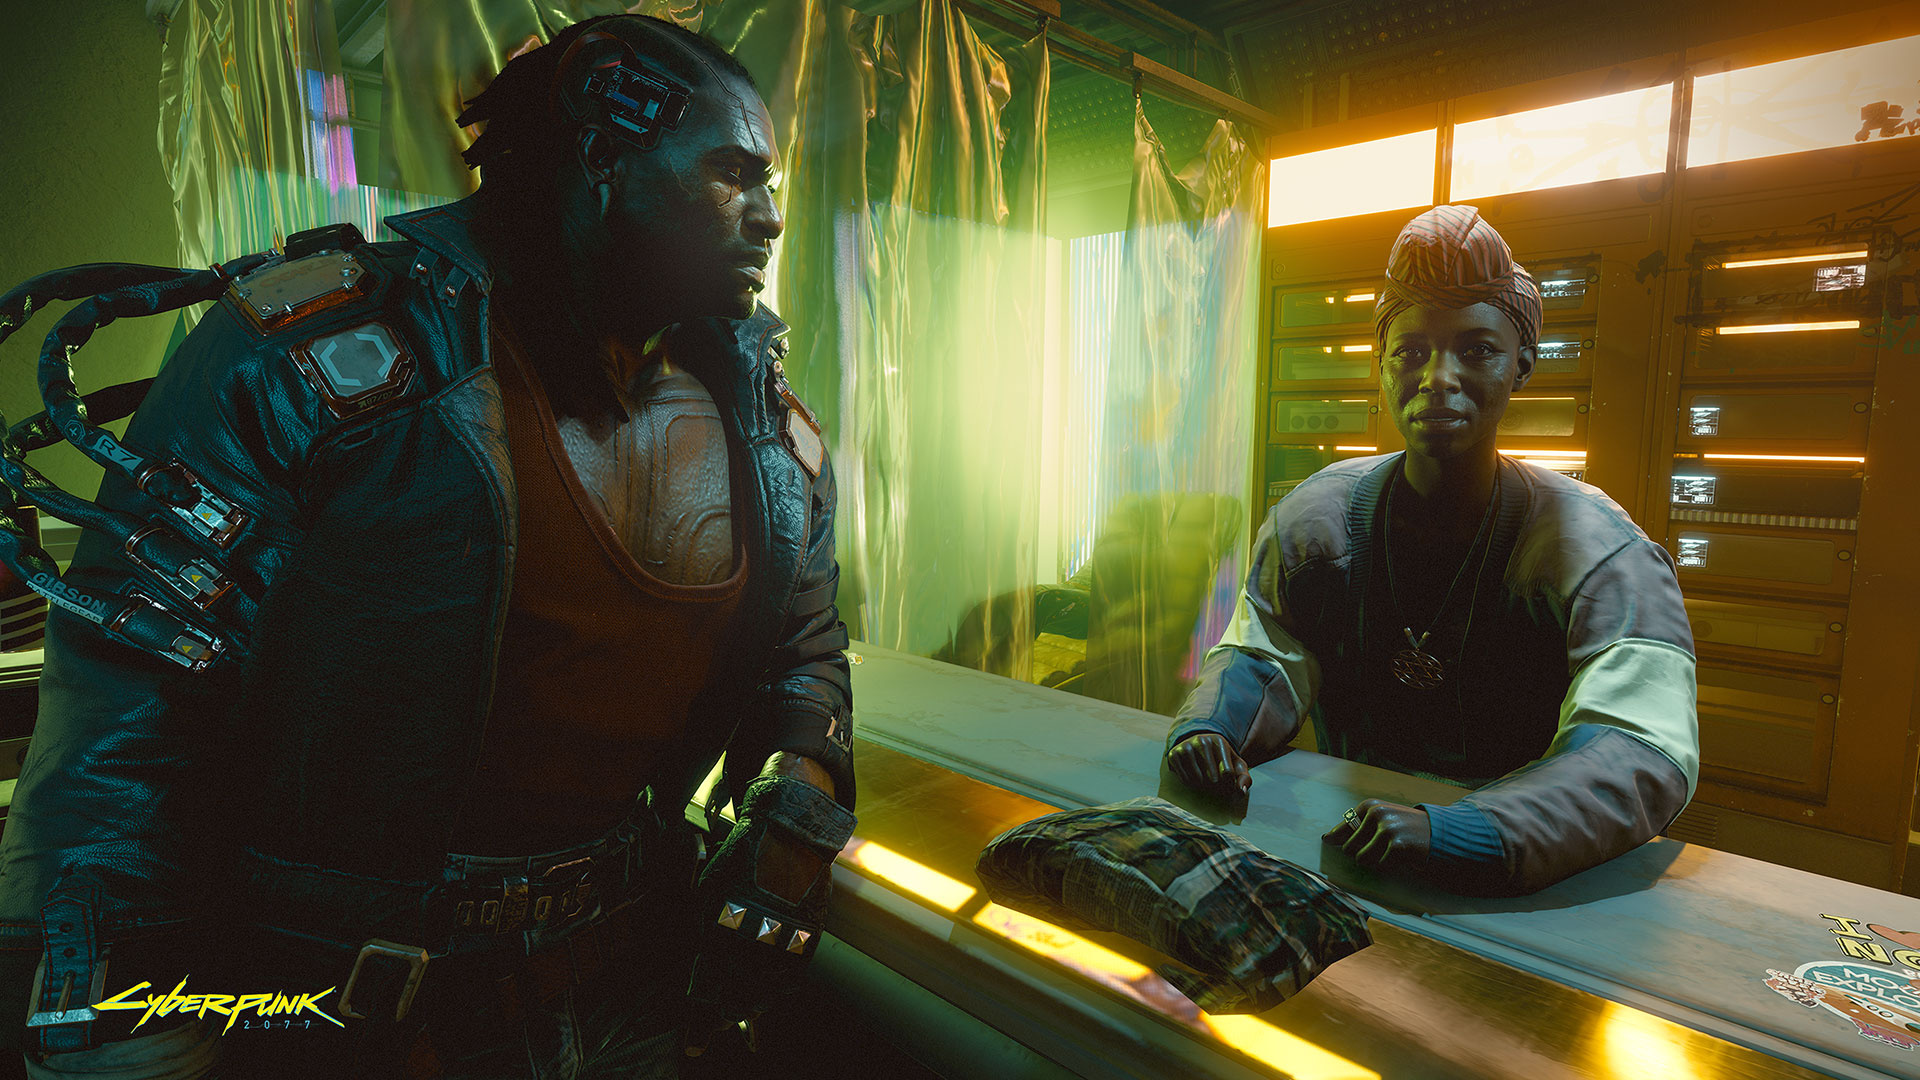 Cyberpunk 2077 Is a 'Whole, Full Value Game' with Expansions Coming After Launch